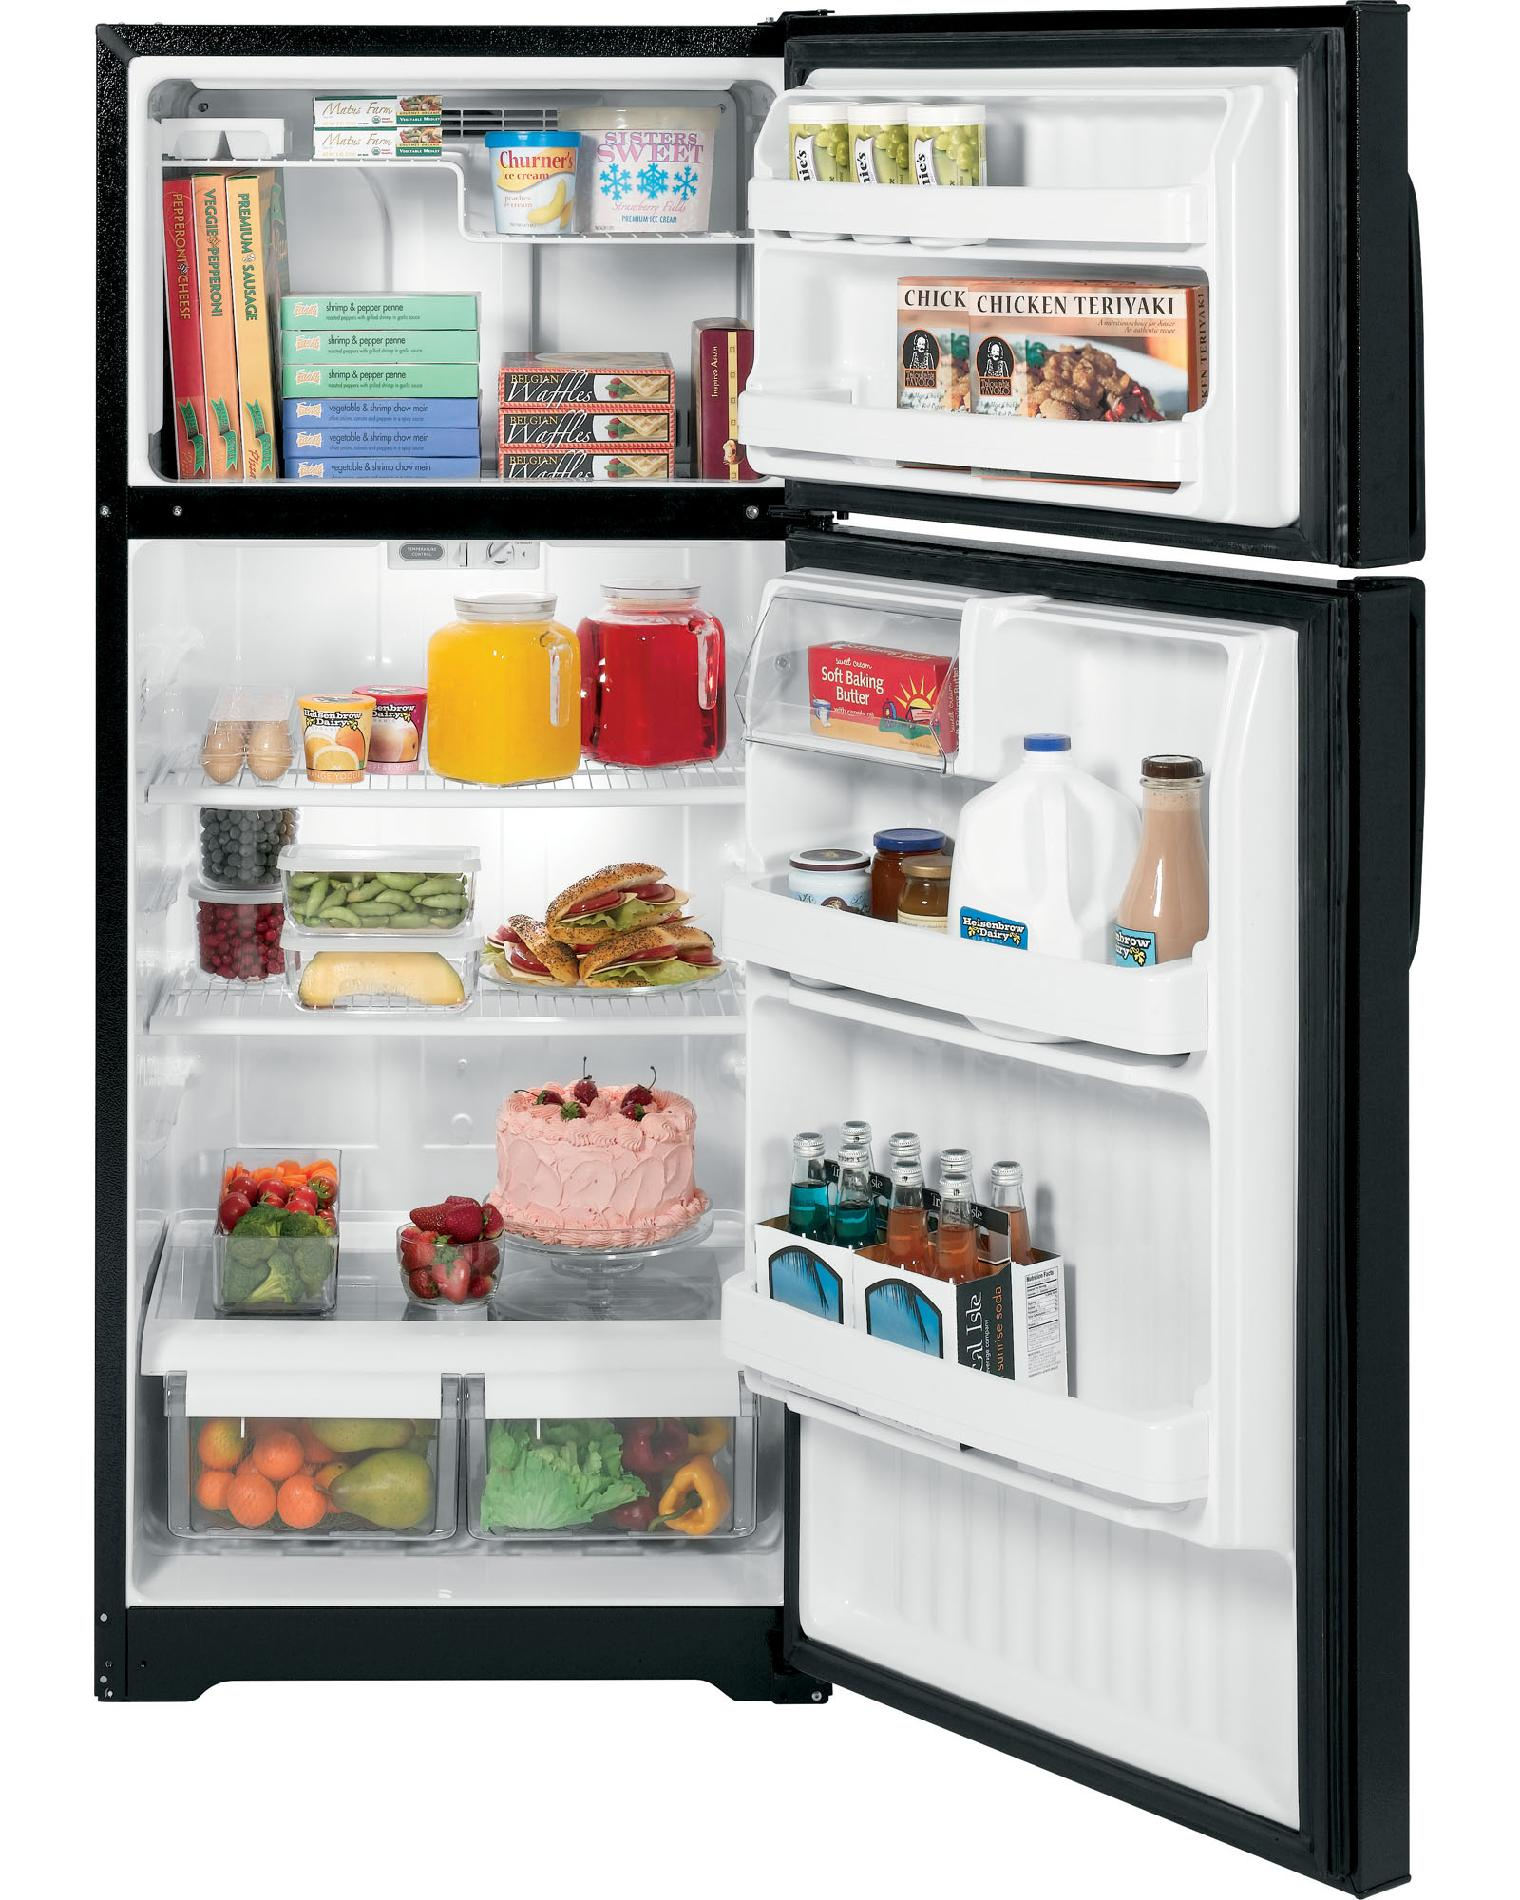 GE 15.5 cu. ft. Top-Freezer Refrigerator - Black